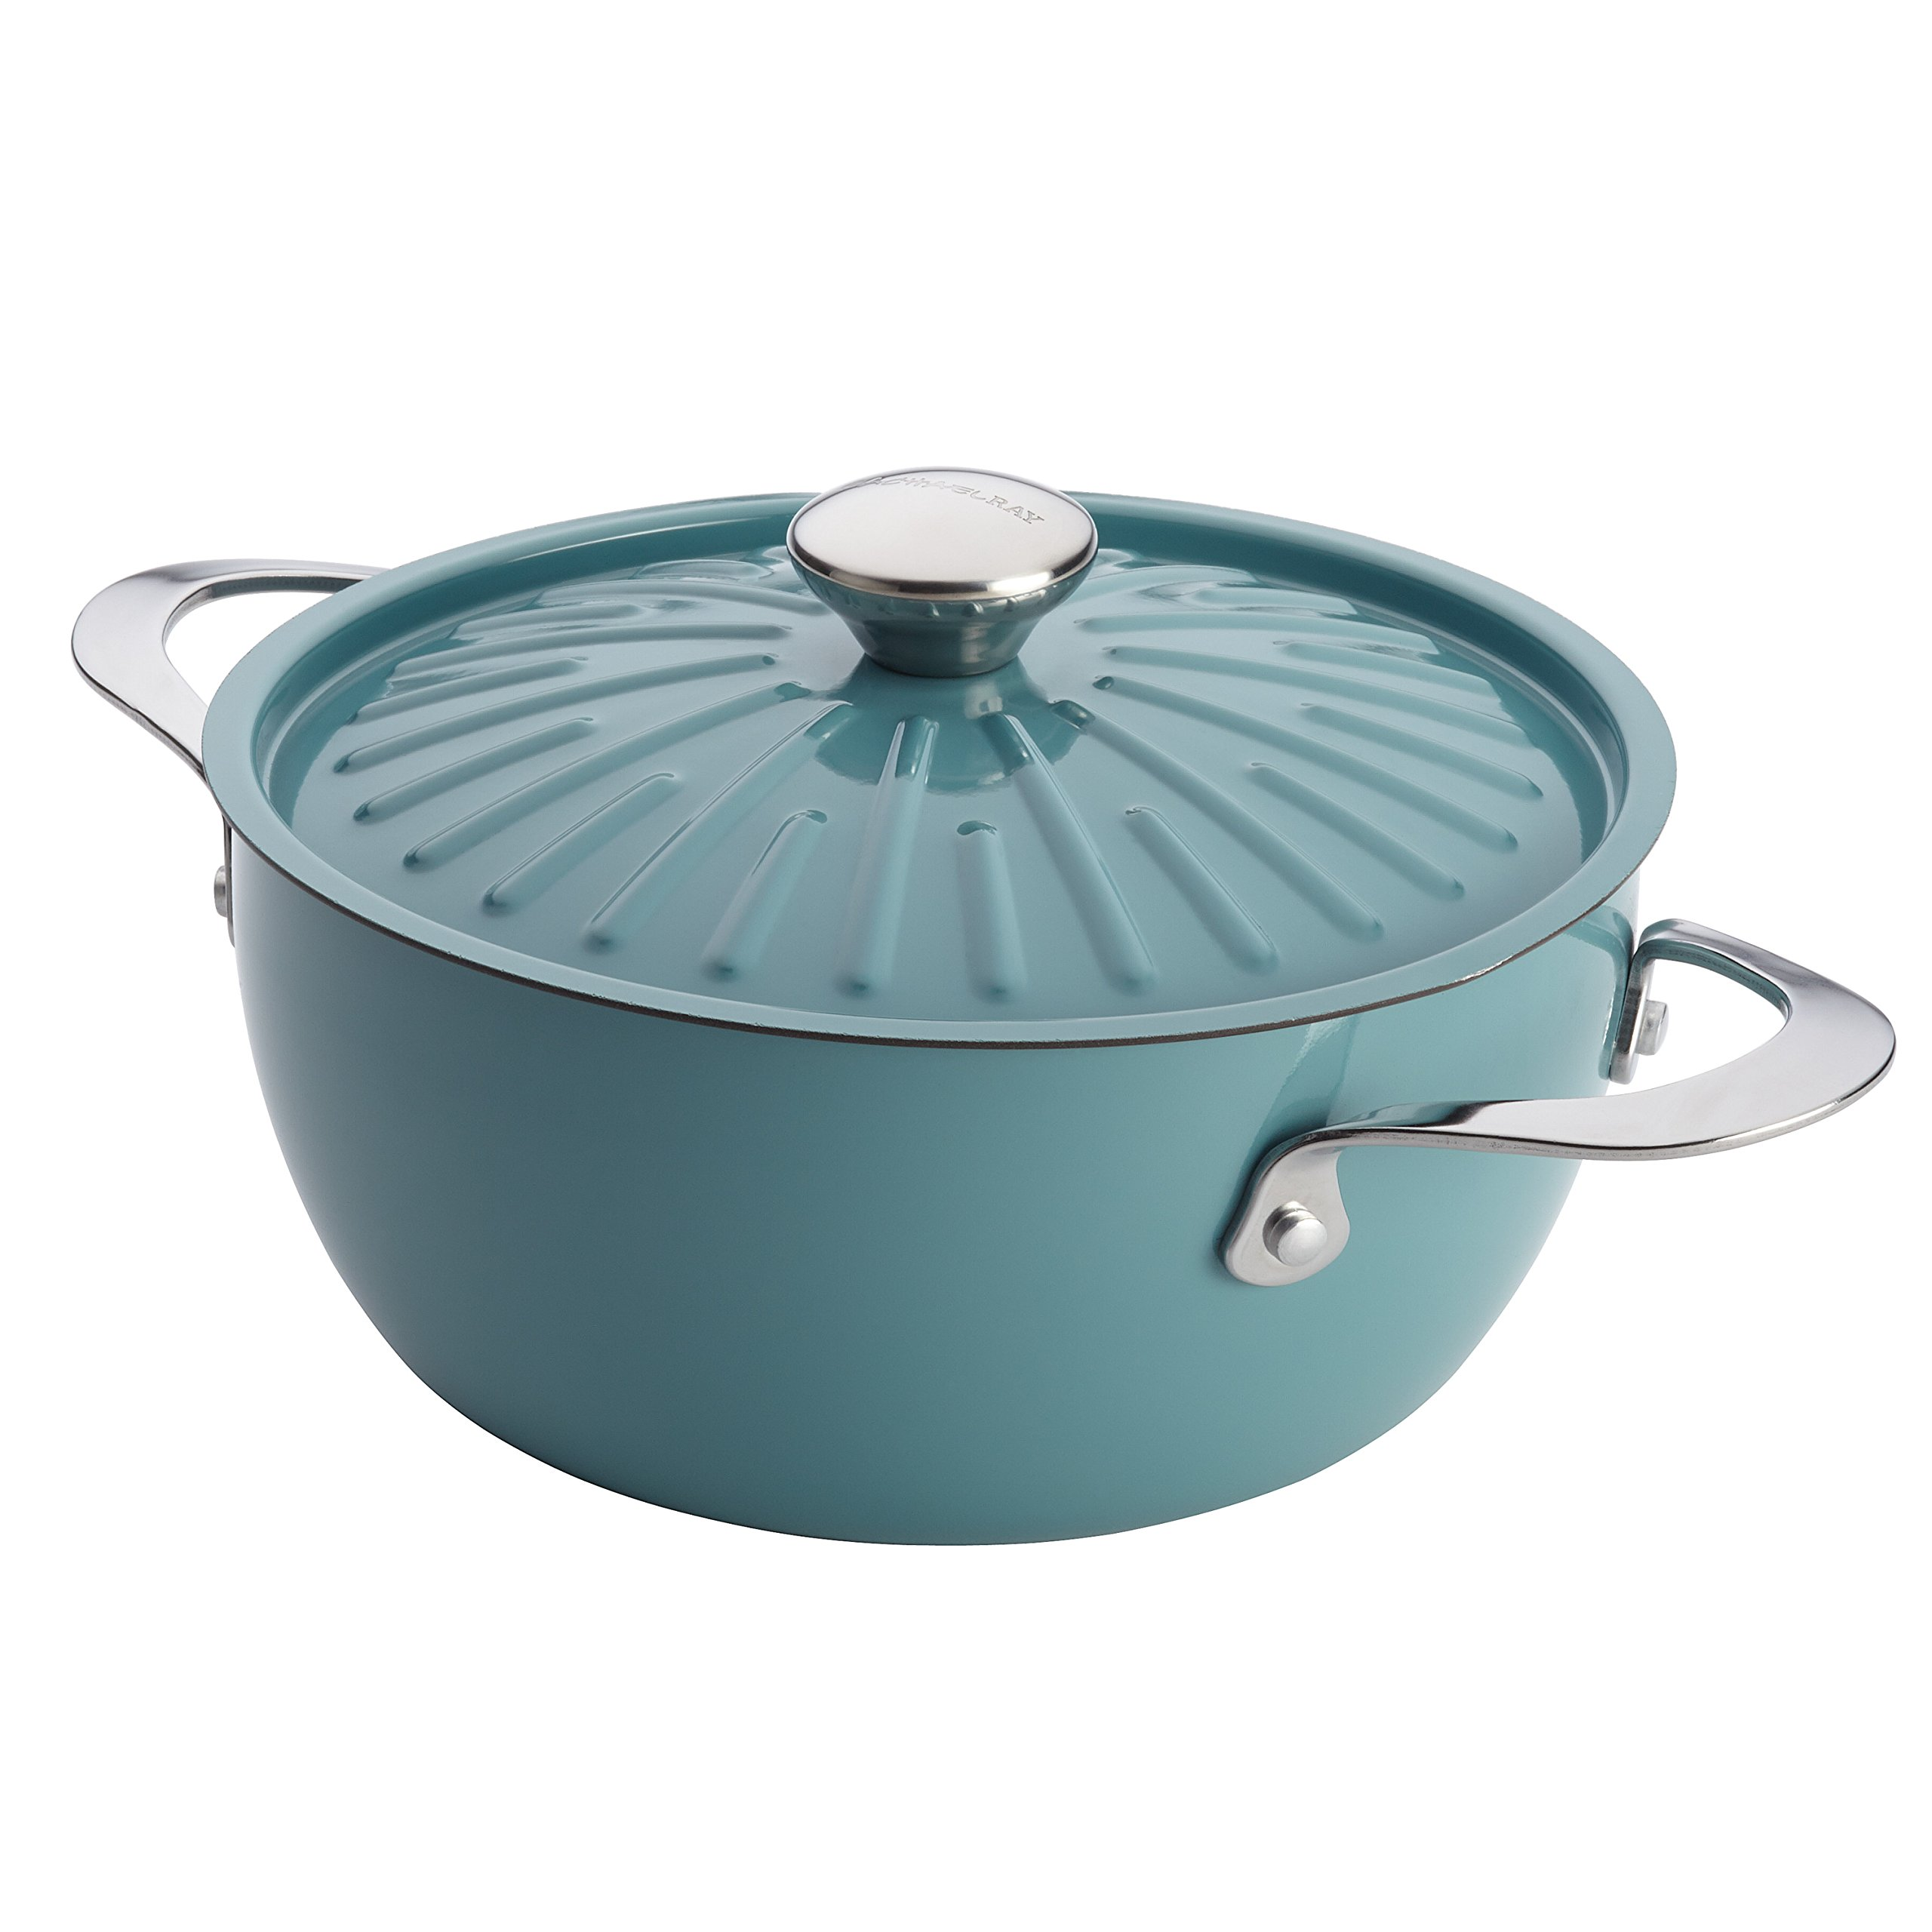 Rachael Ray Cucina Hard Porcelain Enamel Nonstick Covered Round Casserole, 4.5-Quart, Agave Blue by Rachael Ray